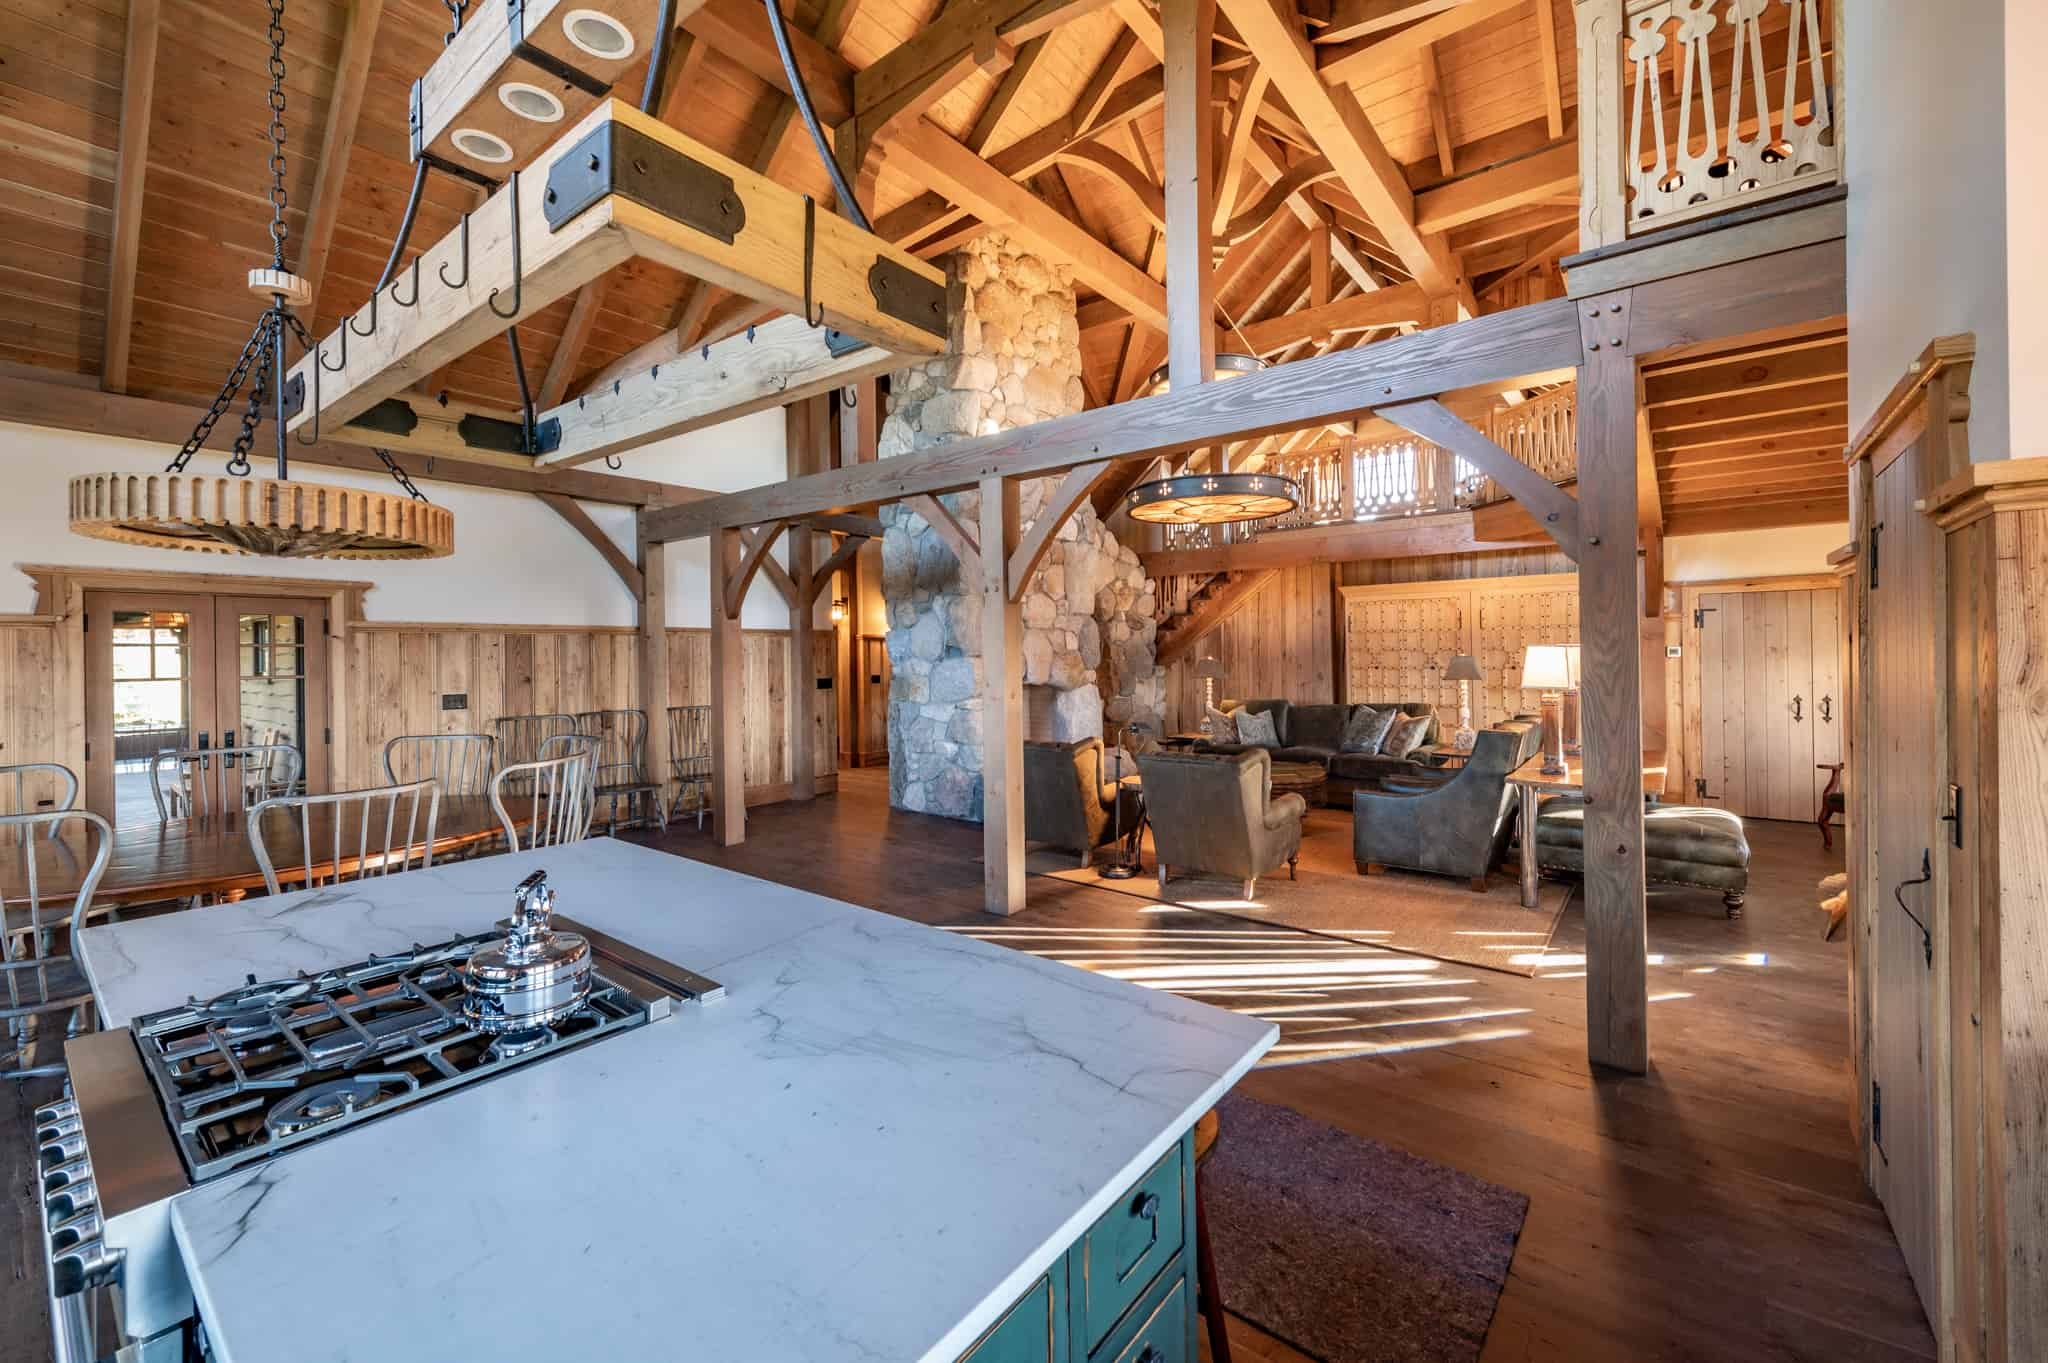 party barn kitchen stove and living room furniture